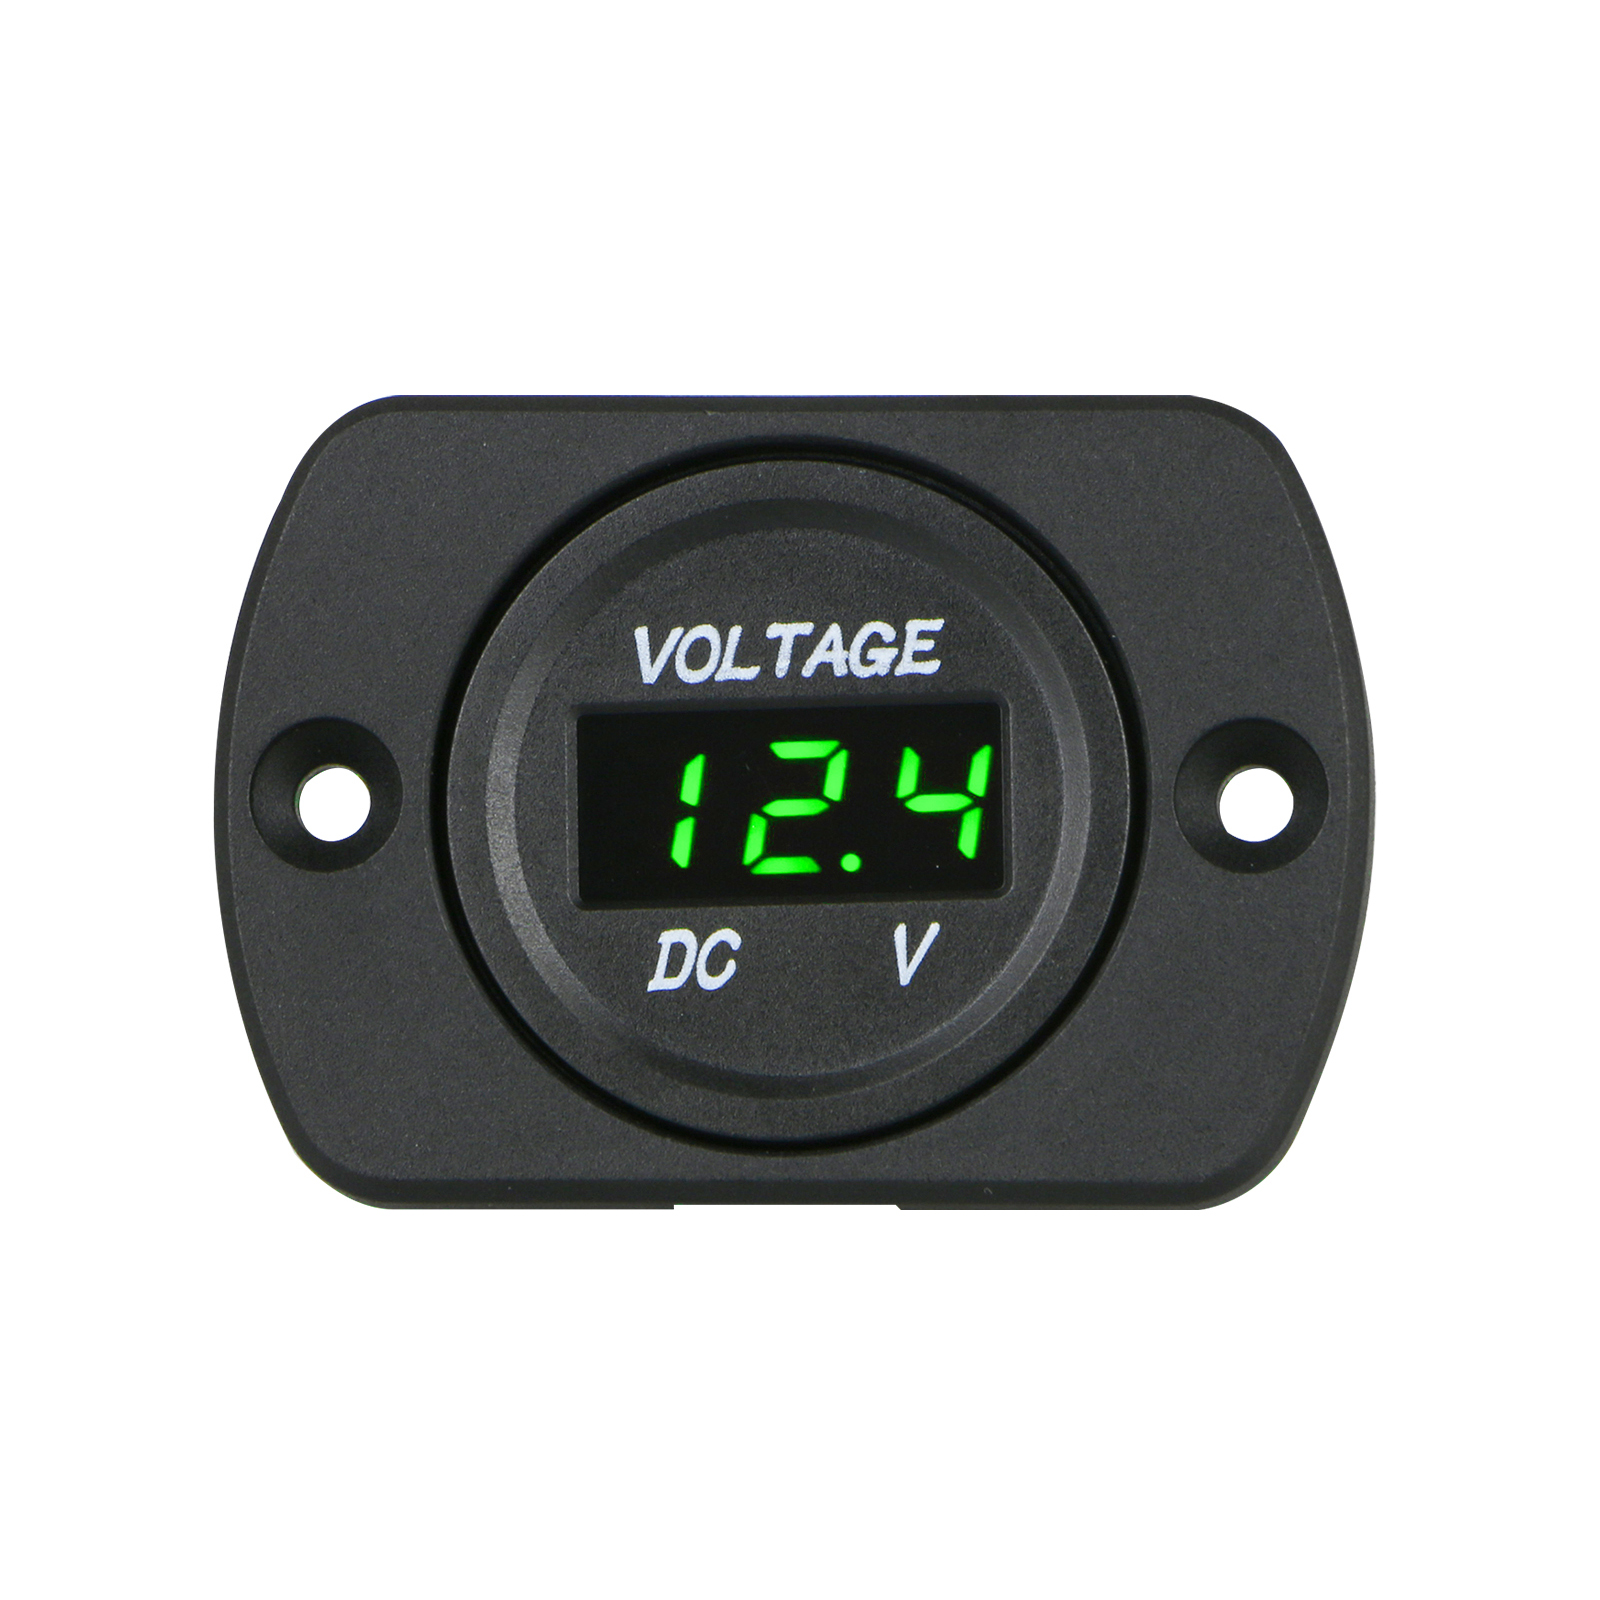 12V-24V LED Digital Voltmeter Car Marine Motorcycle Voltage Meter Battery Gauge